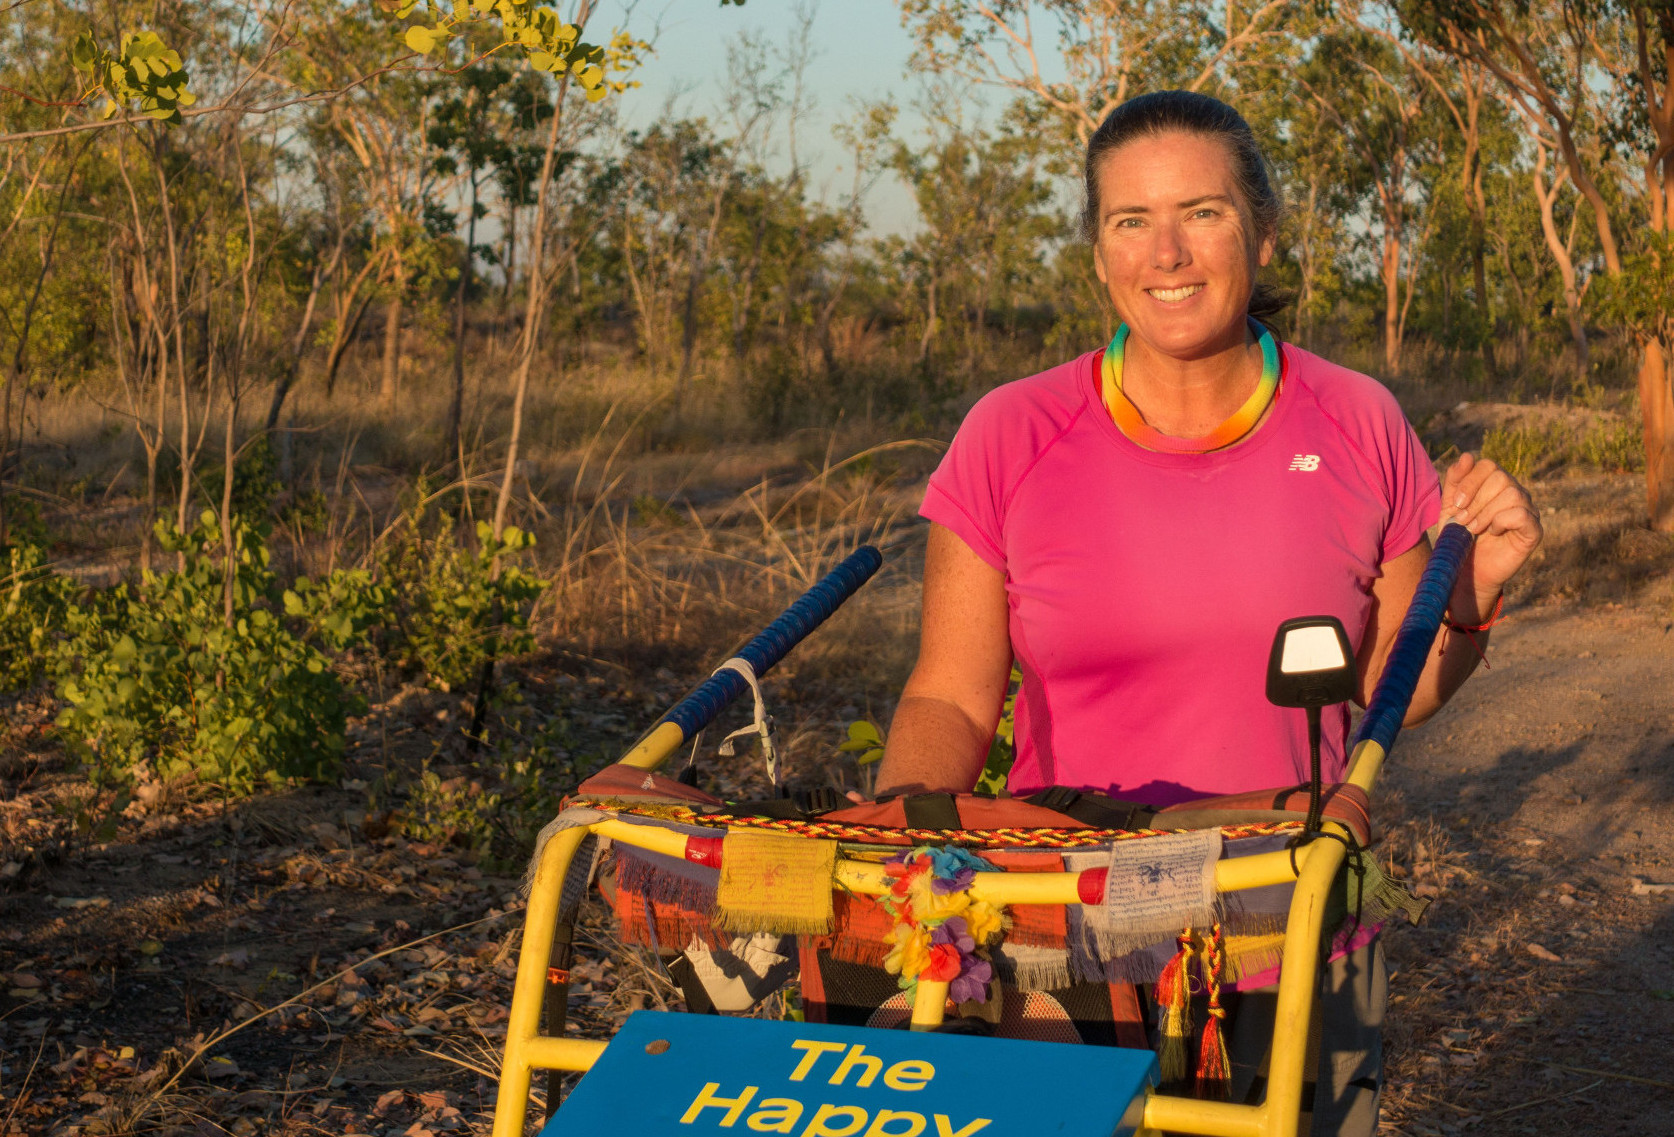 Australian woman on her epic journey